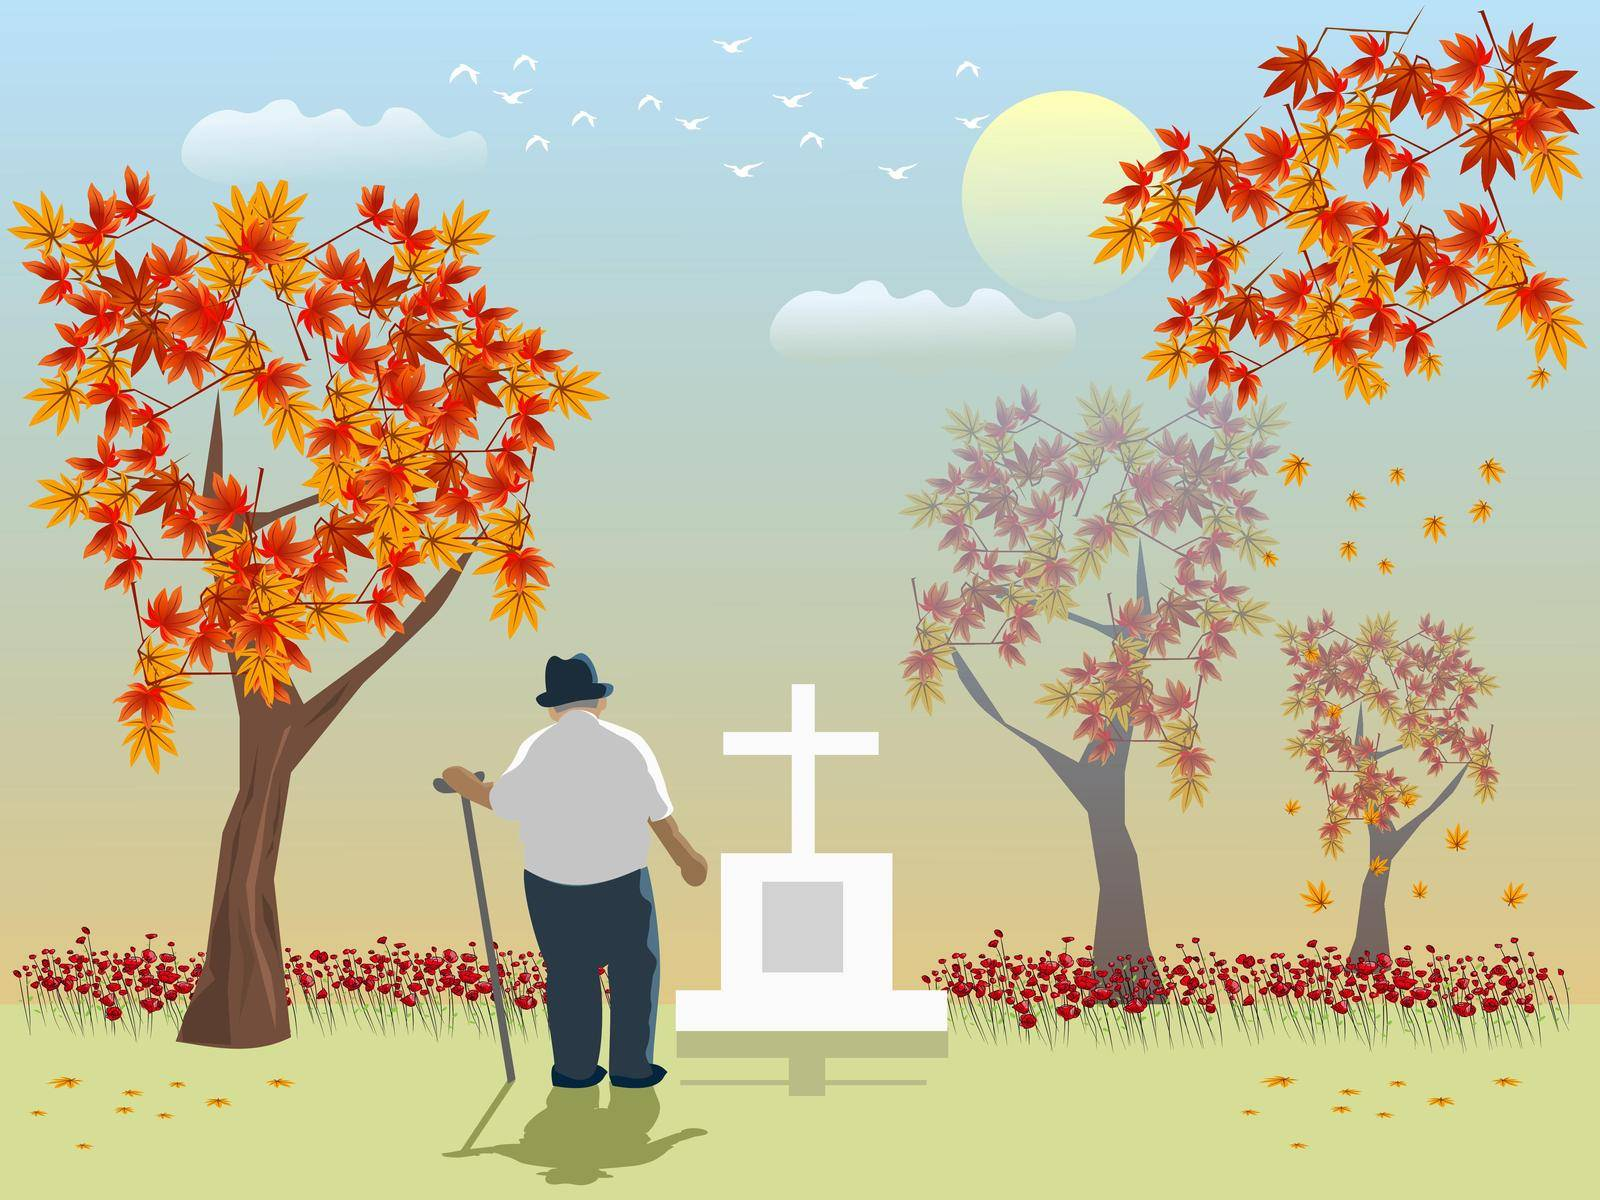 An old man looks at his lover's grave with maple trees and orange sky in the background. by moo12